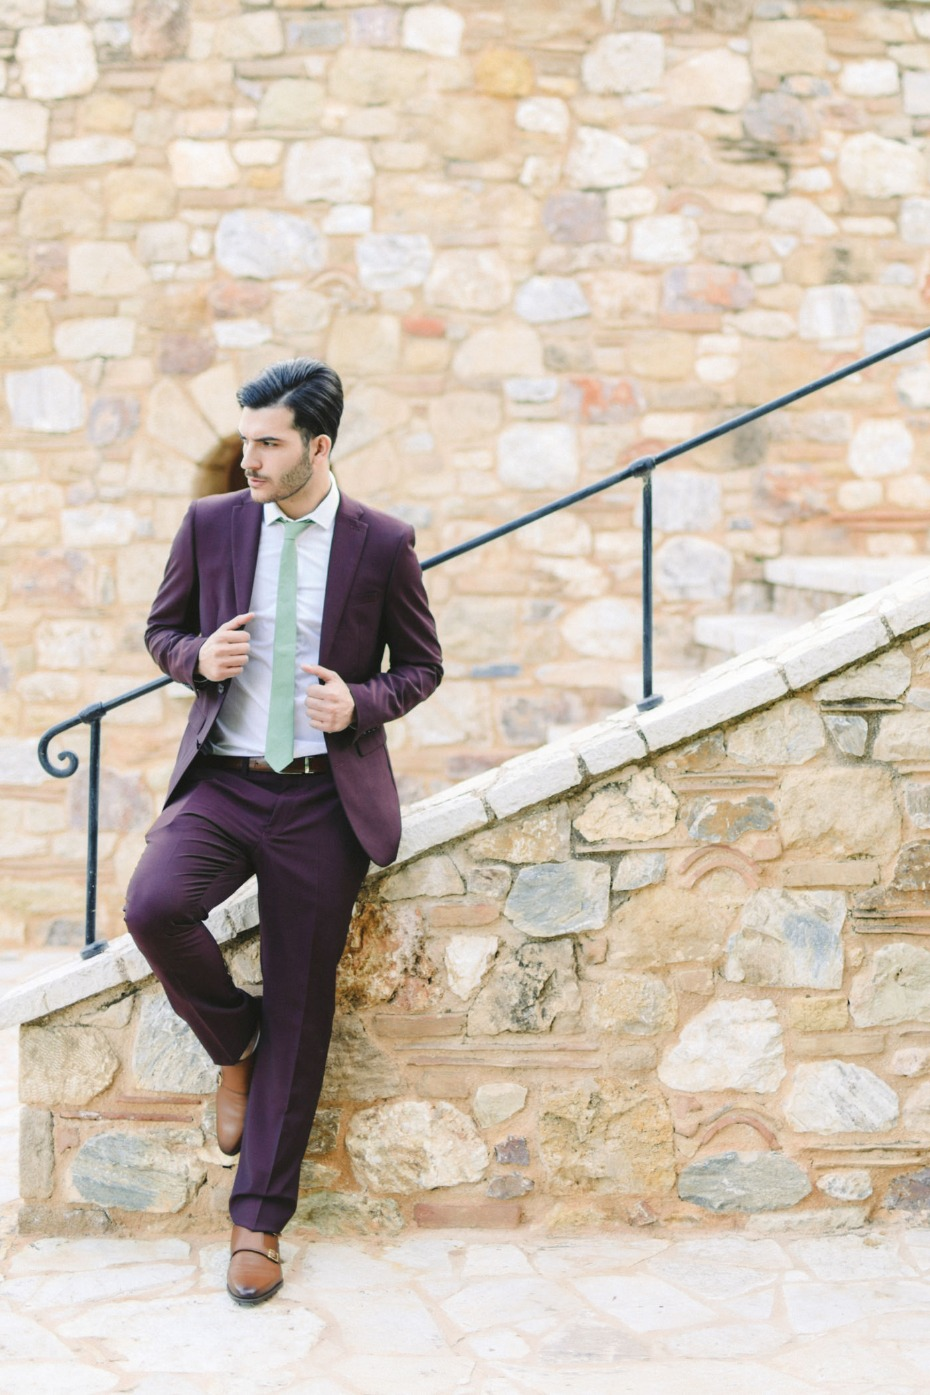 Eggplant colored suit with green tie